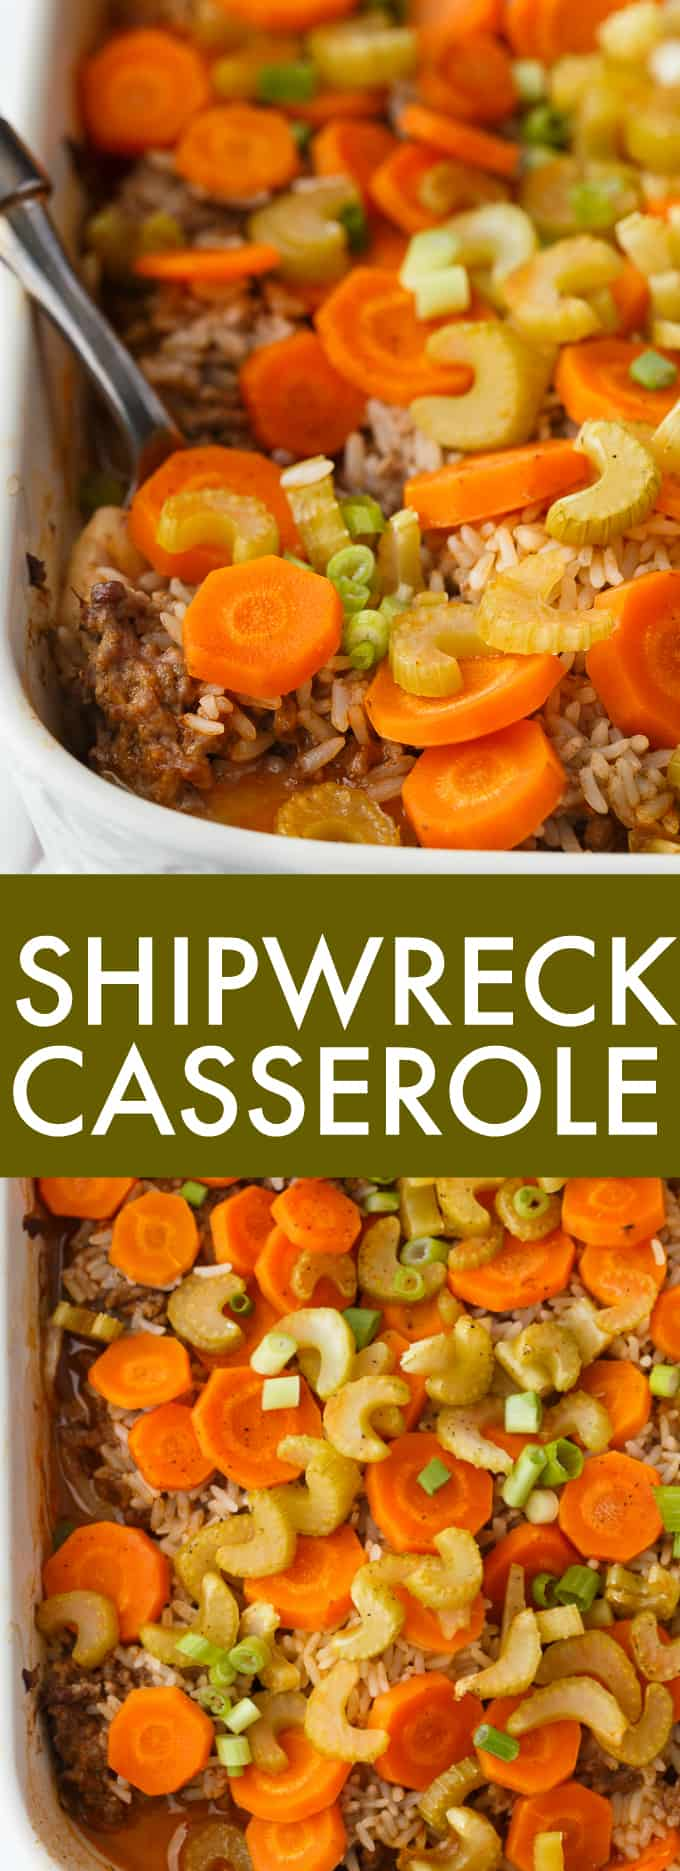 Shipwreck Casserole - The kind of meal grandma used to make! This layered casserole is stick to your bones delicious.